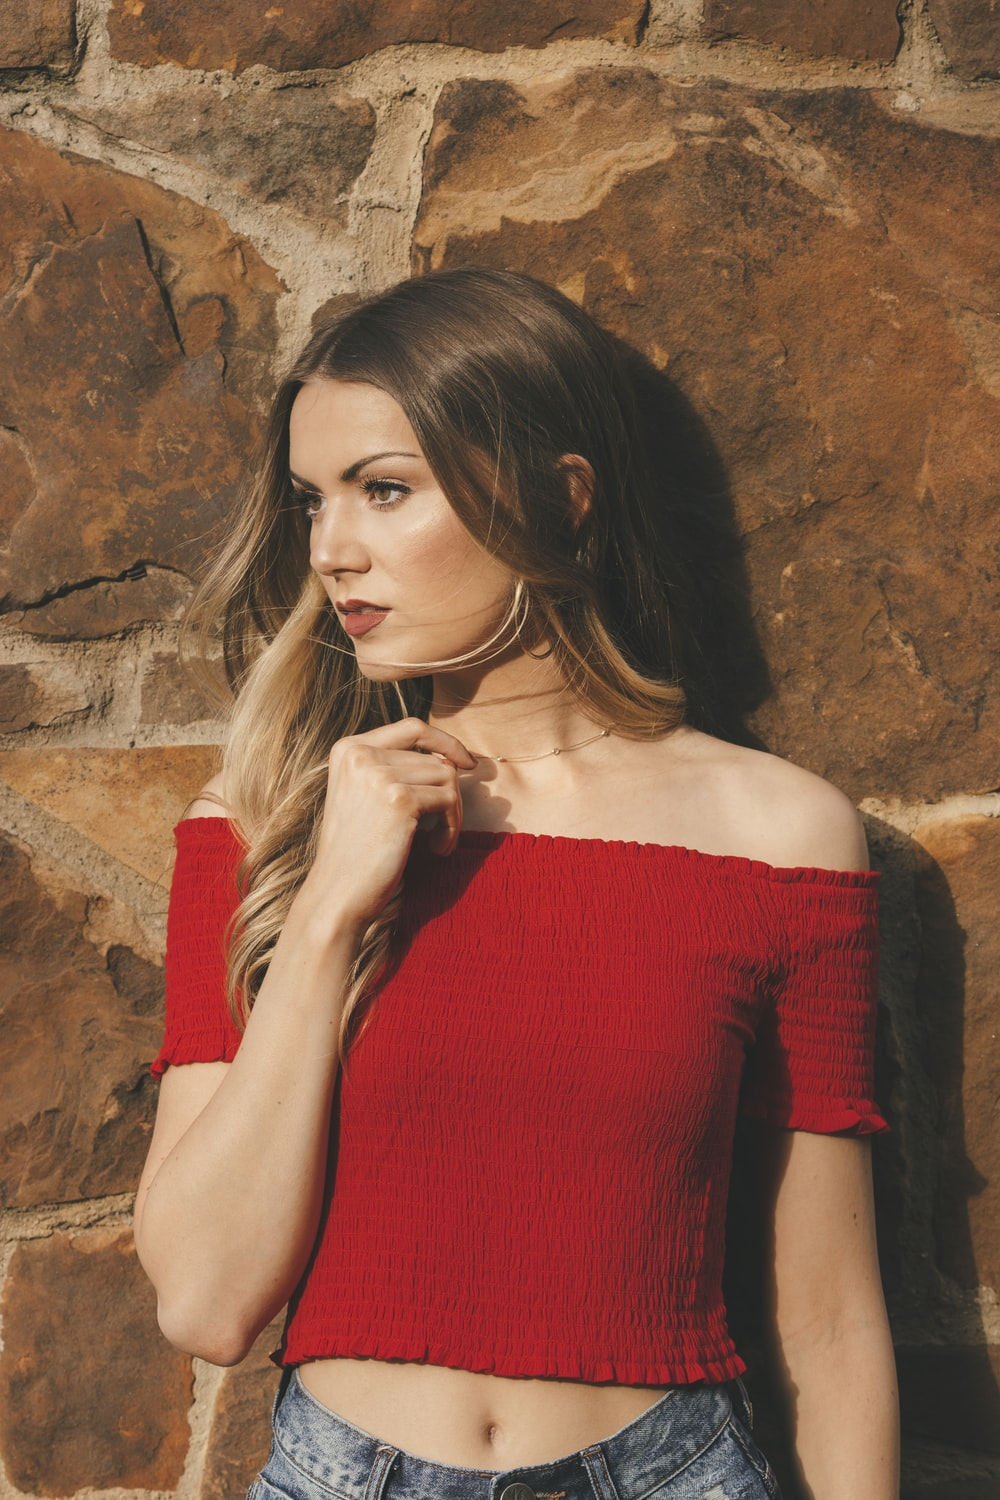 woman wearing red off-shoulder shirt leaning on wall